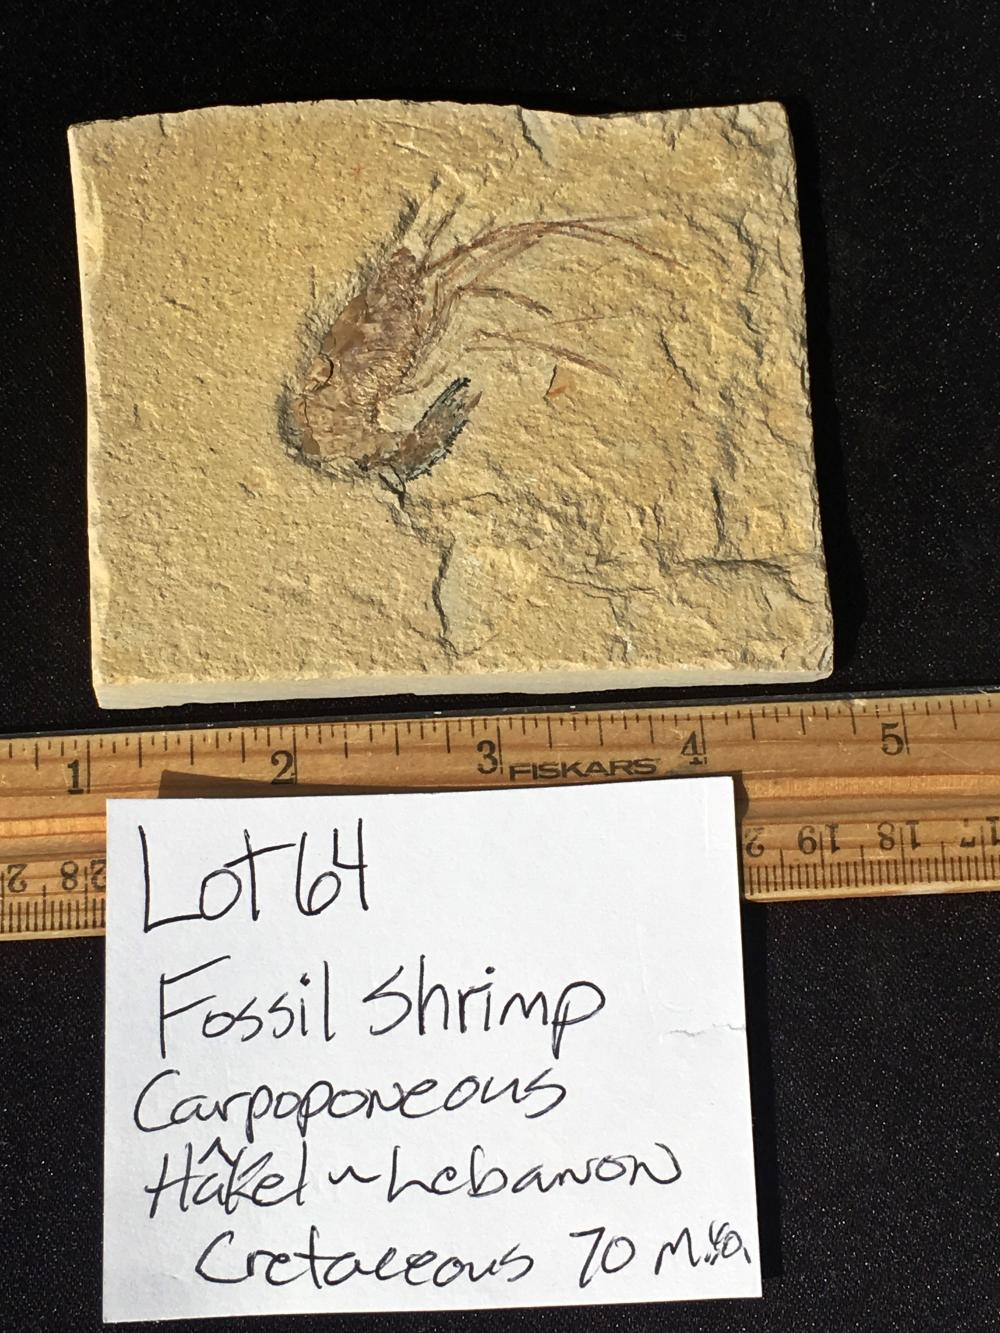 Lot 64: Shrimp, Rock, Fossil, Natural, Collectible, Specimen